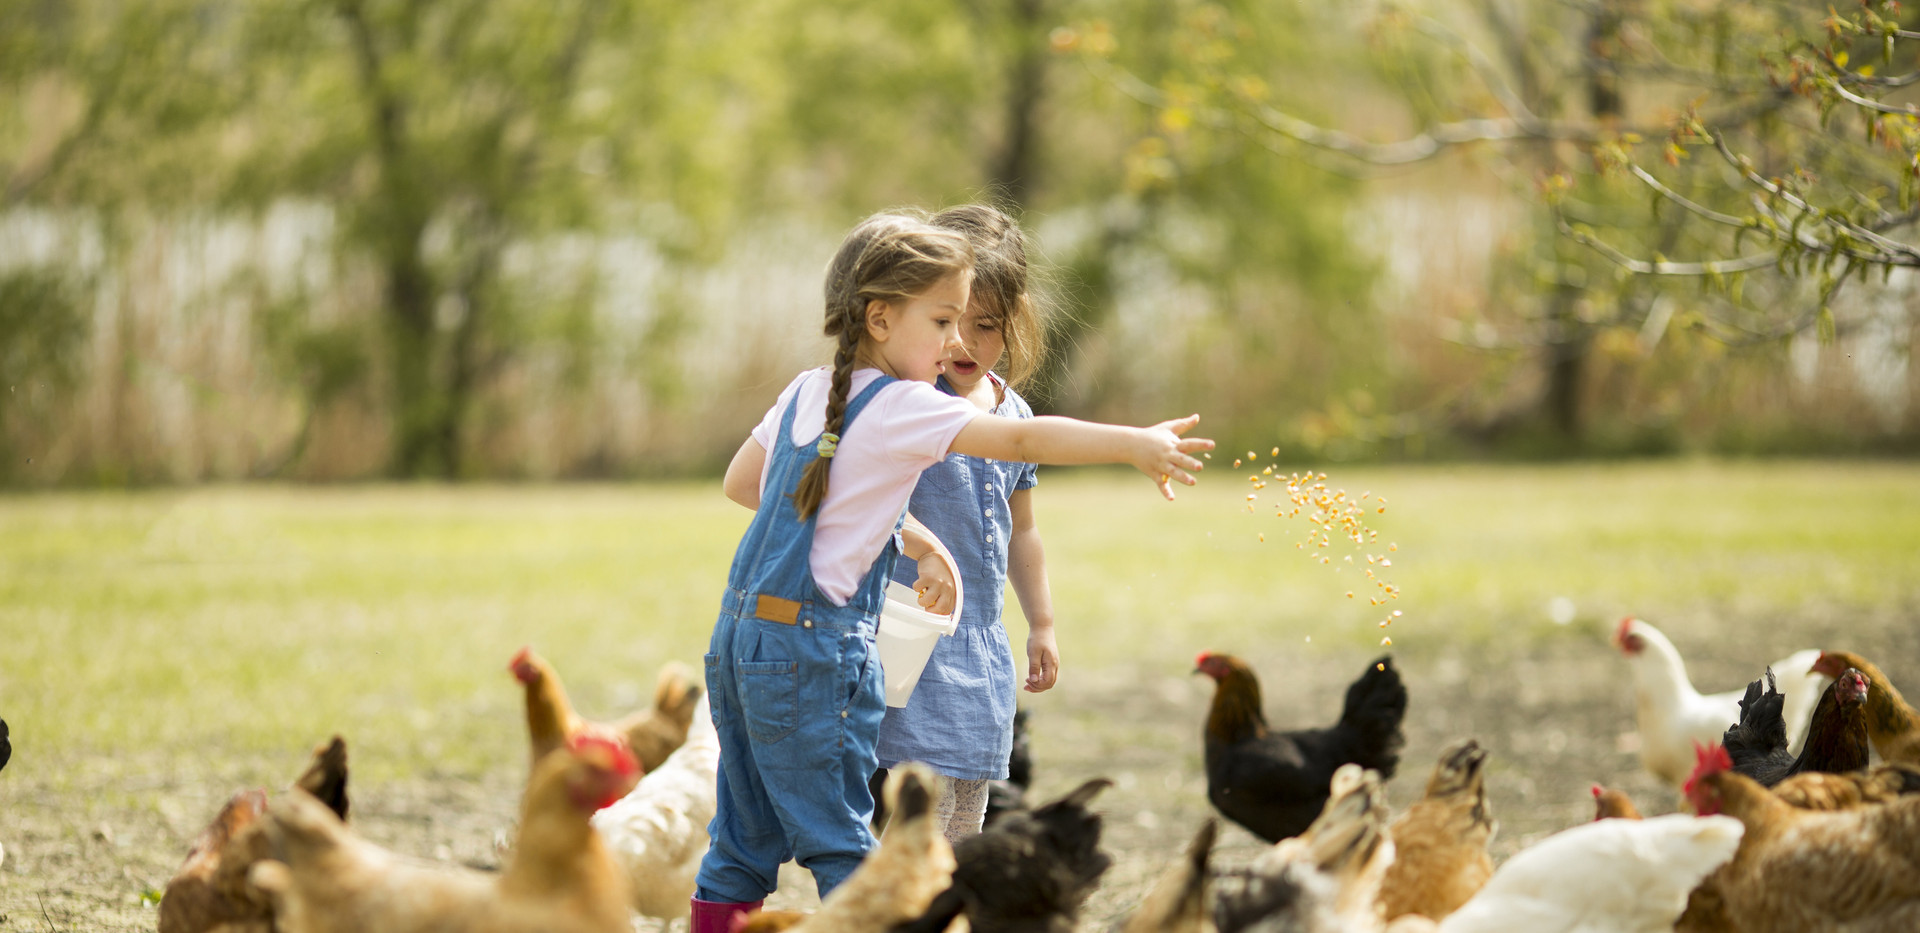 Girls feeding chickens.jpg